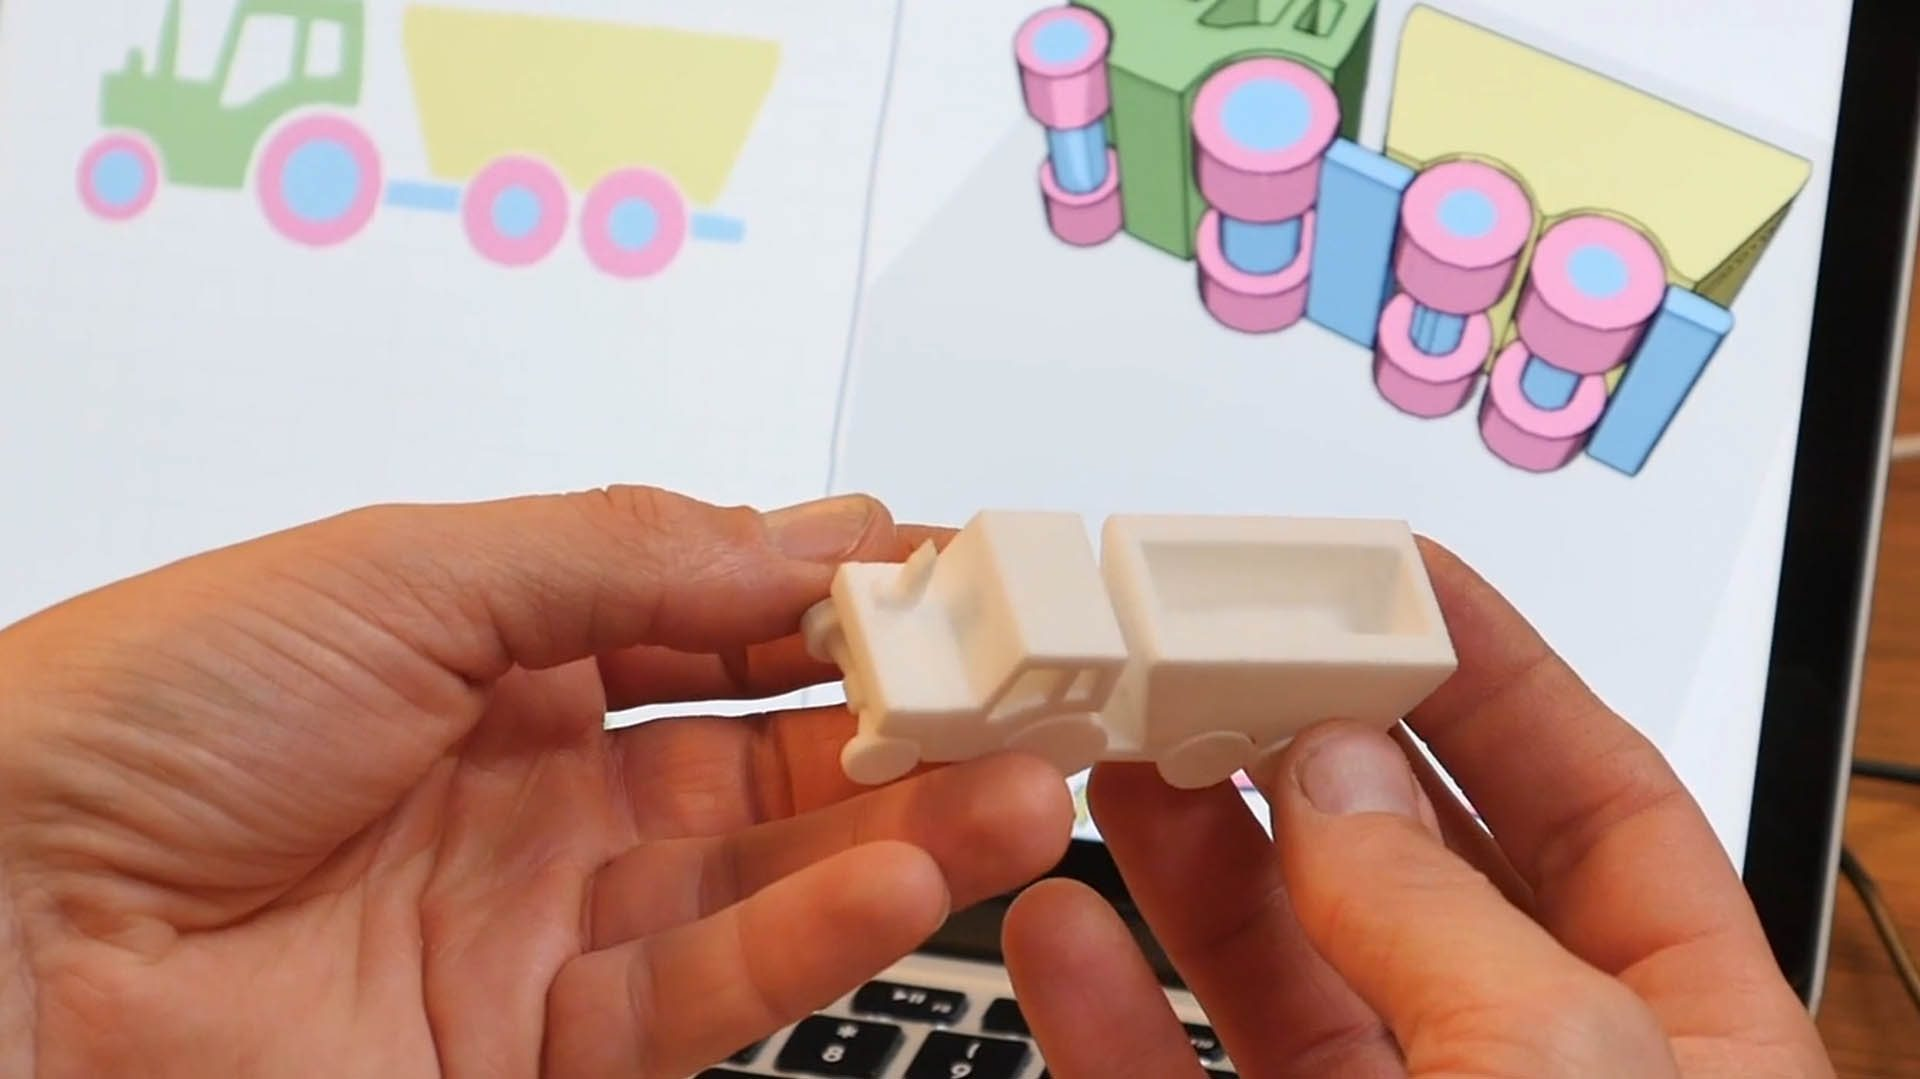 From app to printed object. Image: Doodle3D